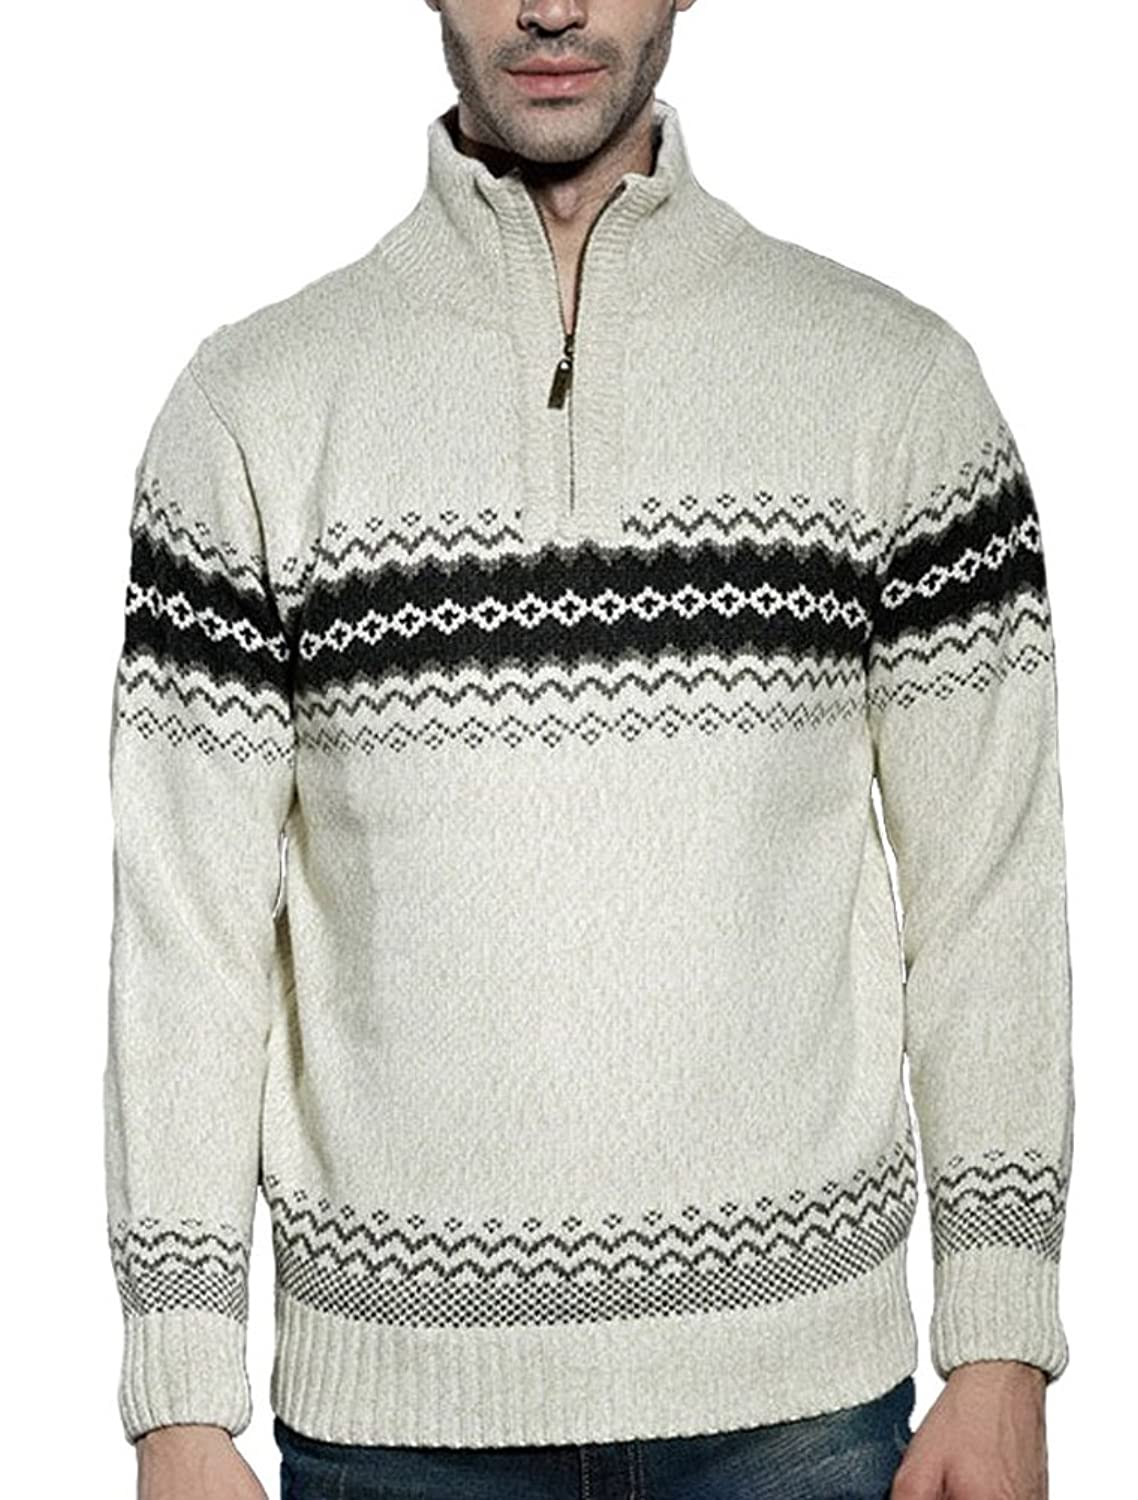 MatchLife Men's New Pullover Jumper Knitted Sweater Top